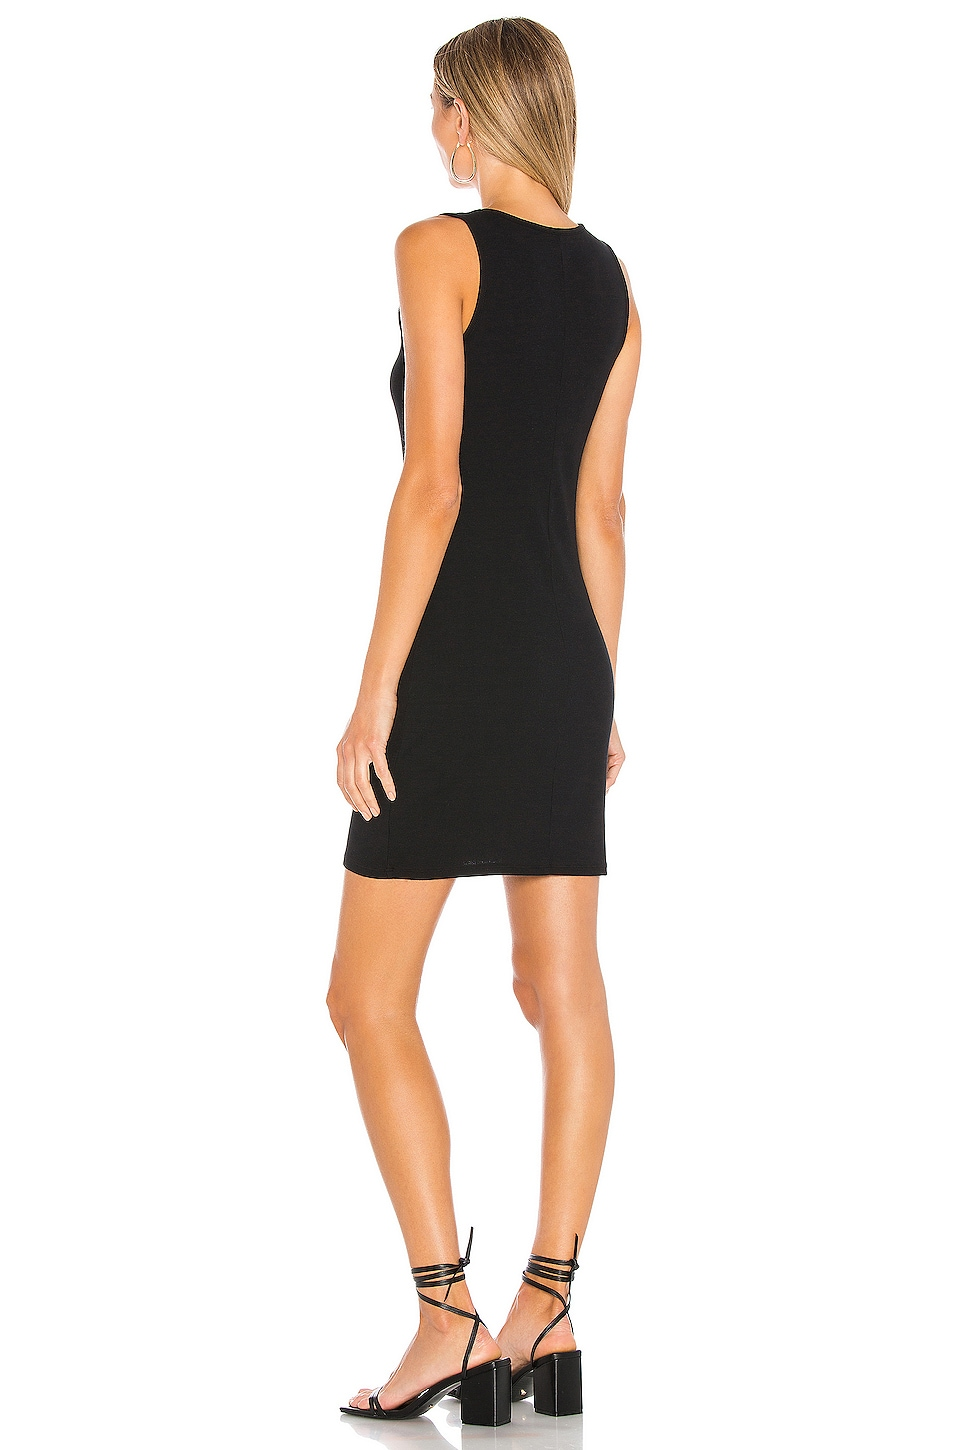 Modal Spandex Rib Bodycon Mini Dress, view 3, click to view large image.